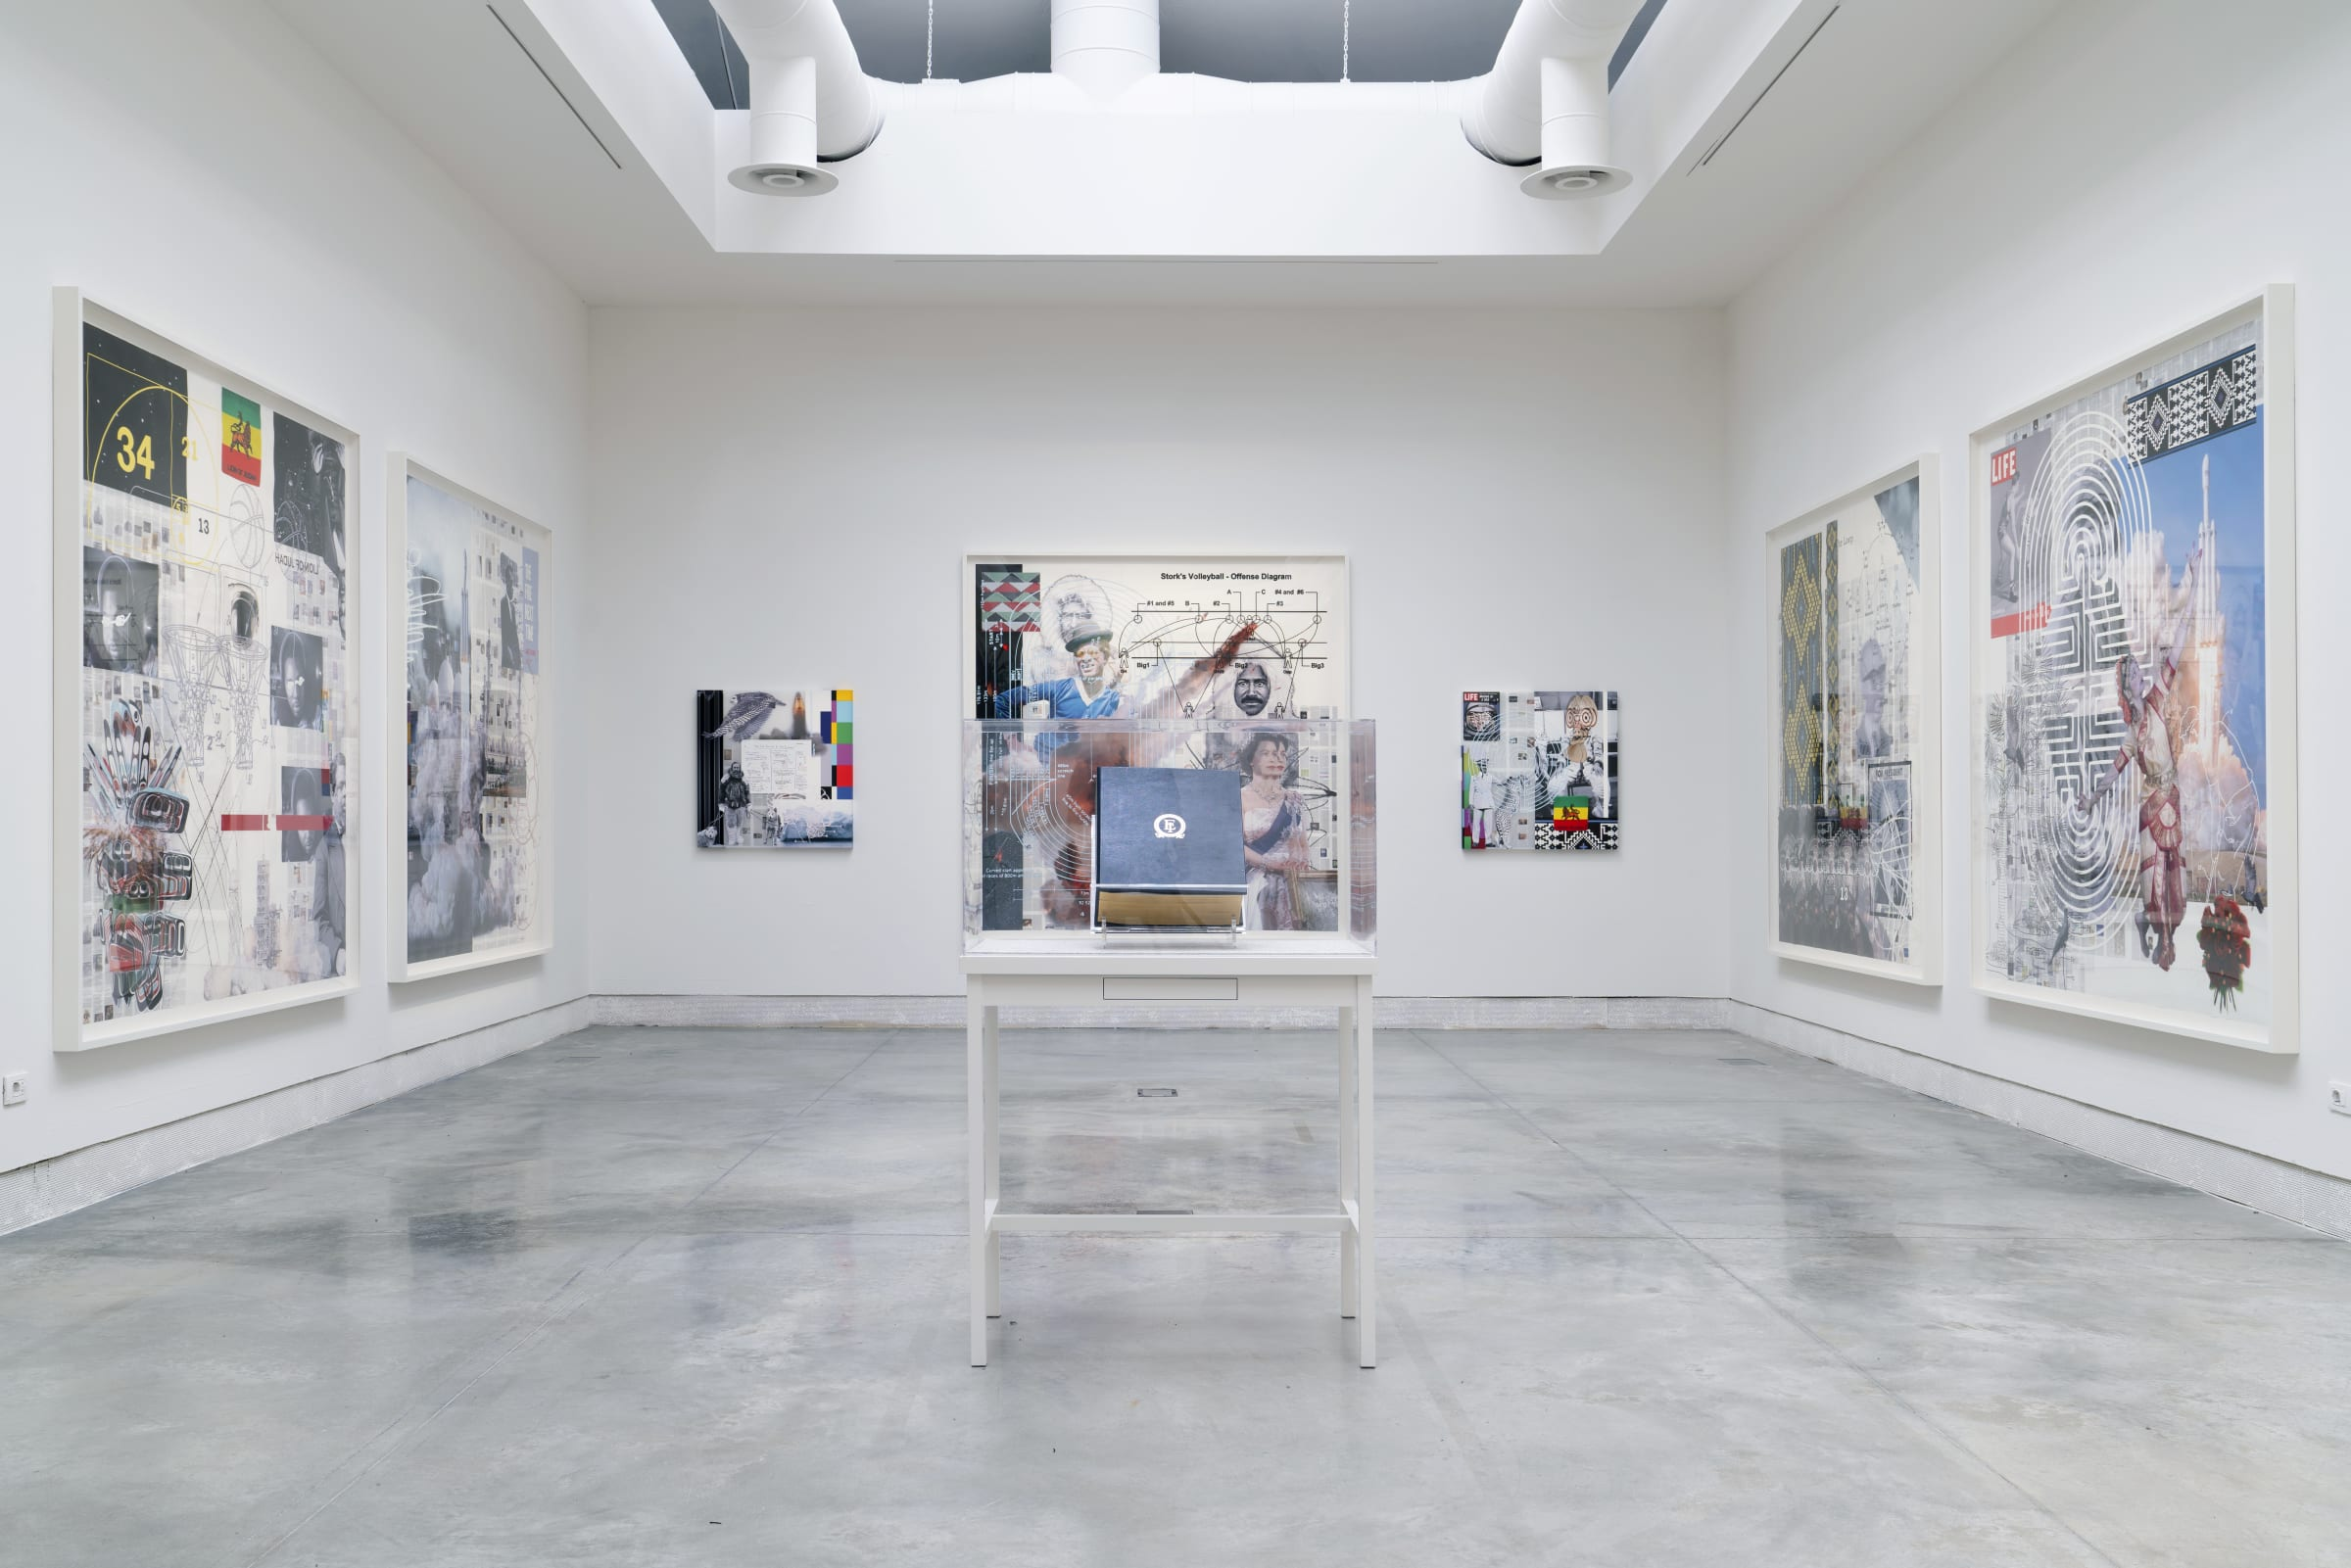 Installation view of various framed works on 3 walls with a vitrine in the center by Tavares Strachan